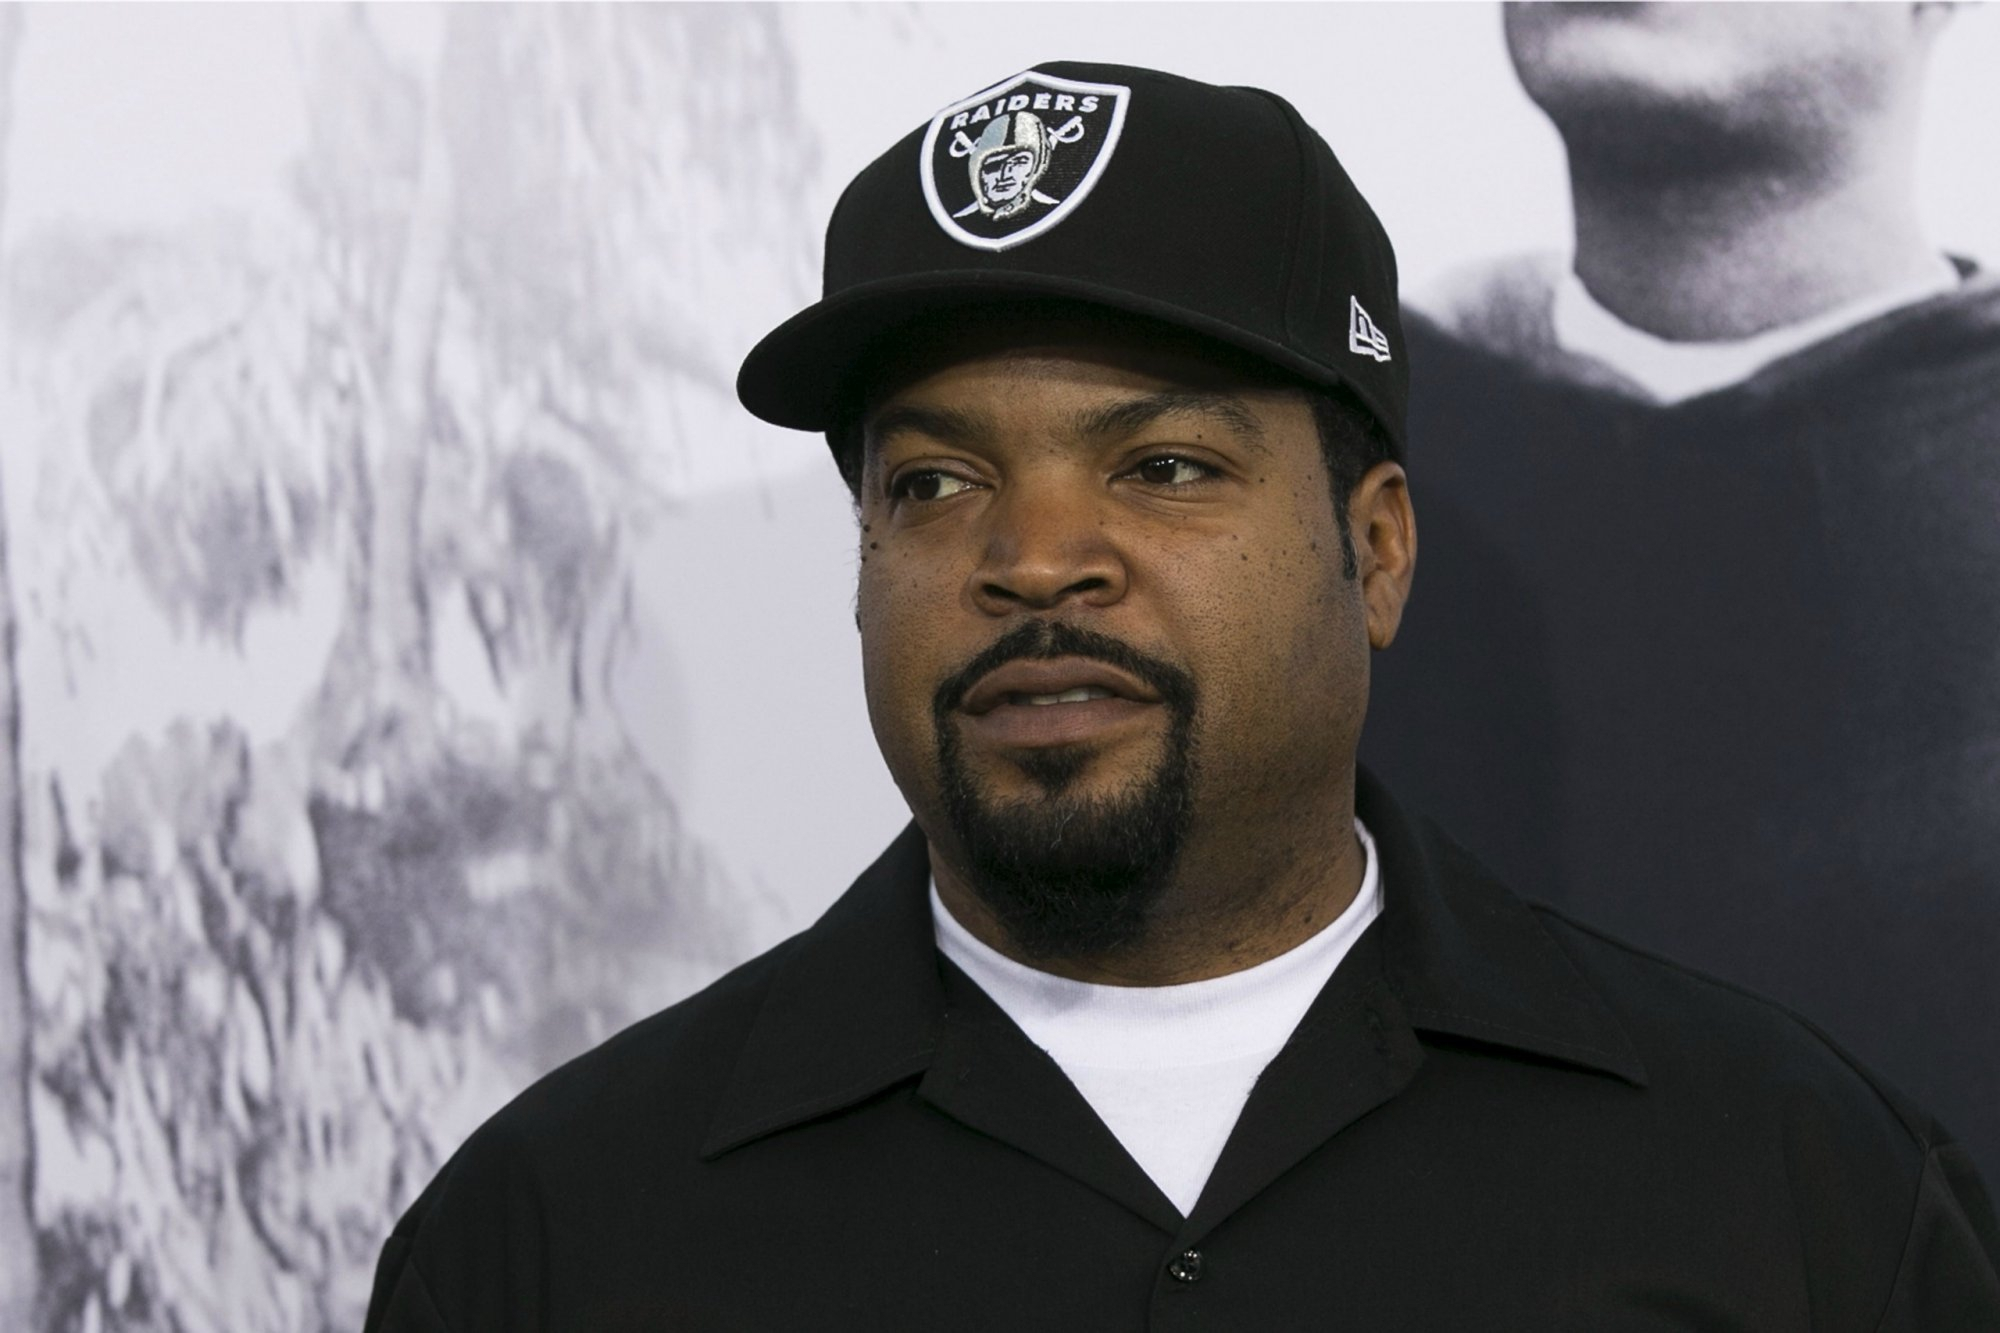 ice cube For the first time ever in grand rapids, ice cube featuring nwa is coming to  van andel arena special guests are ice t, the dogg pound and.